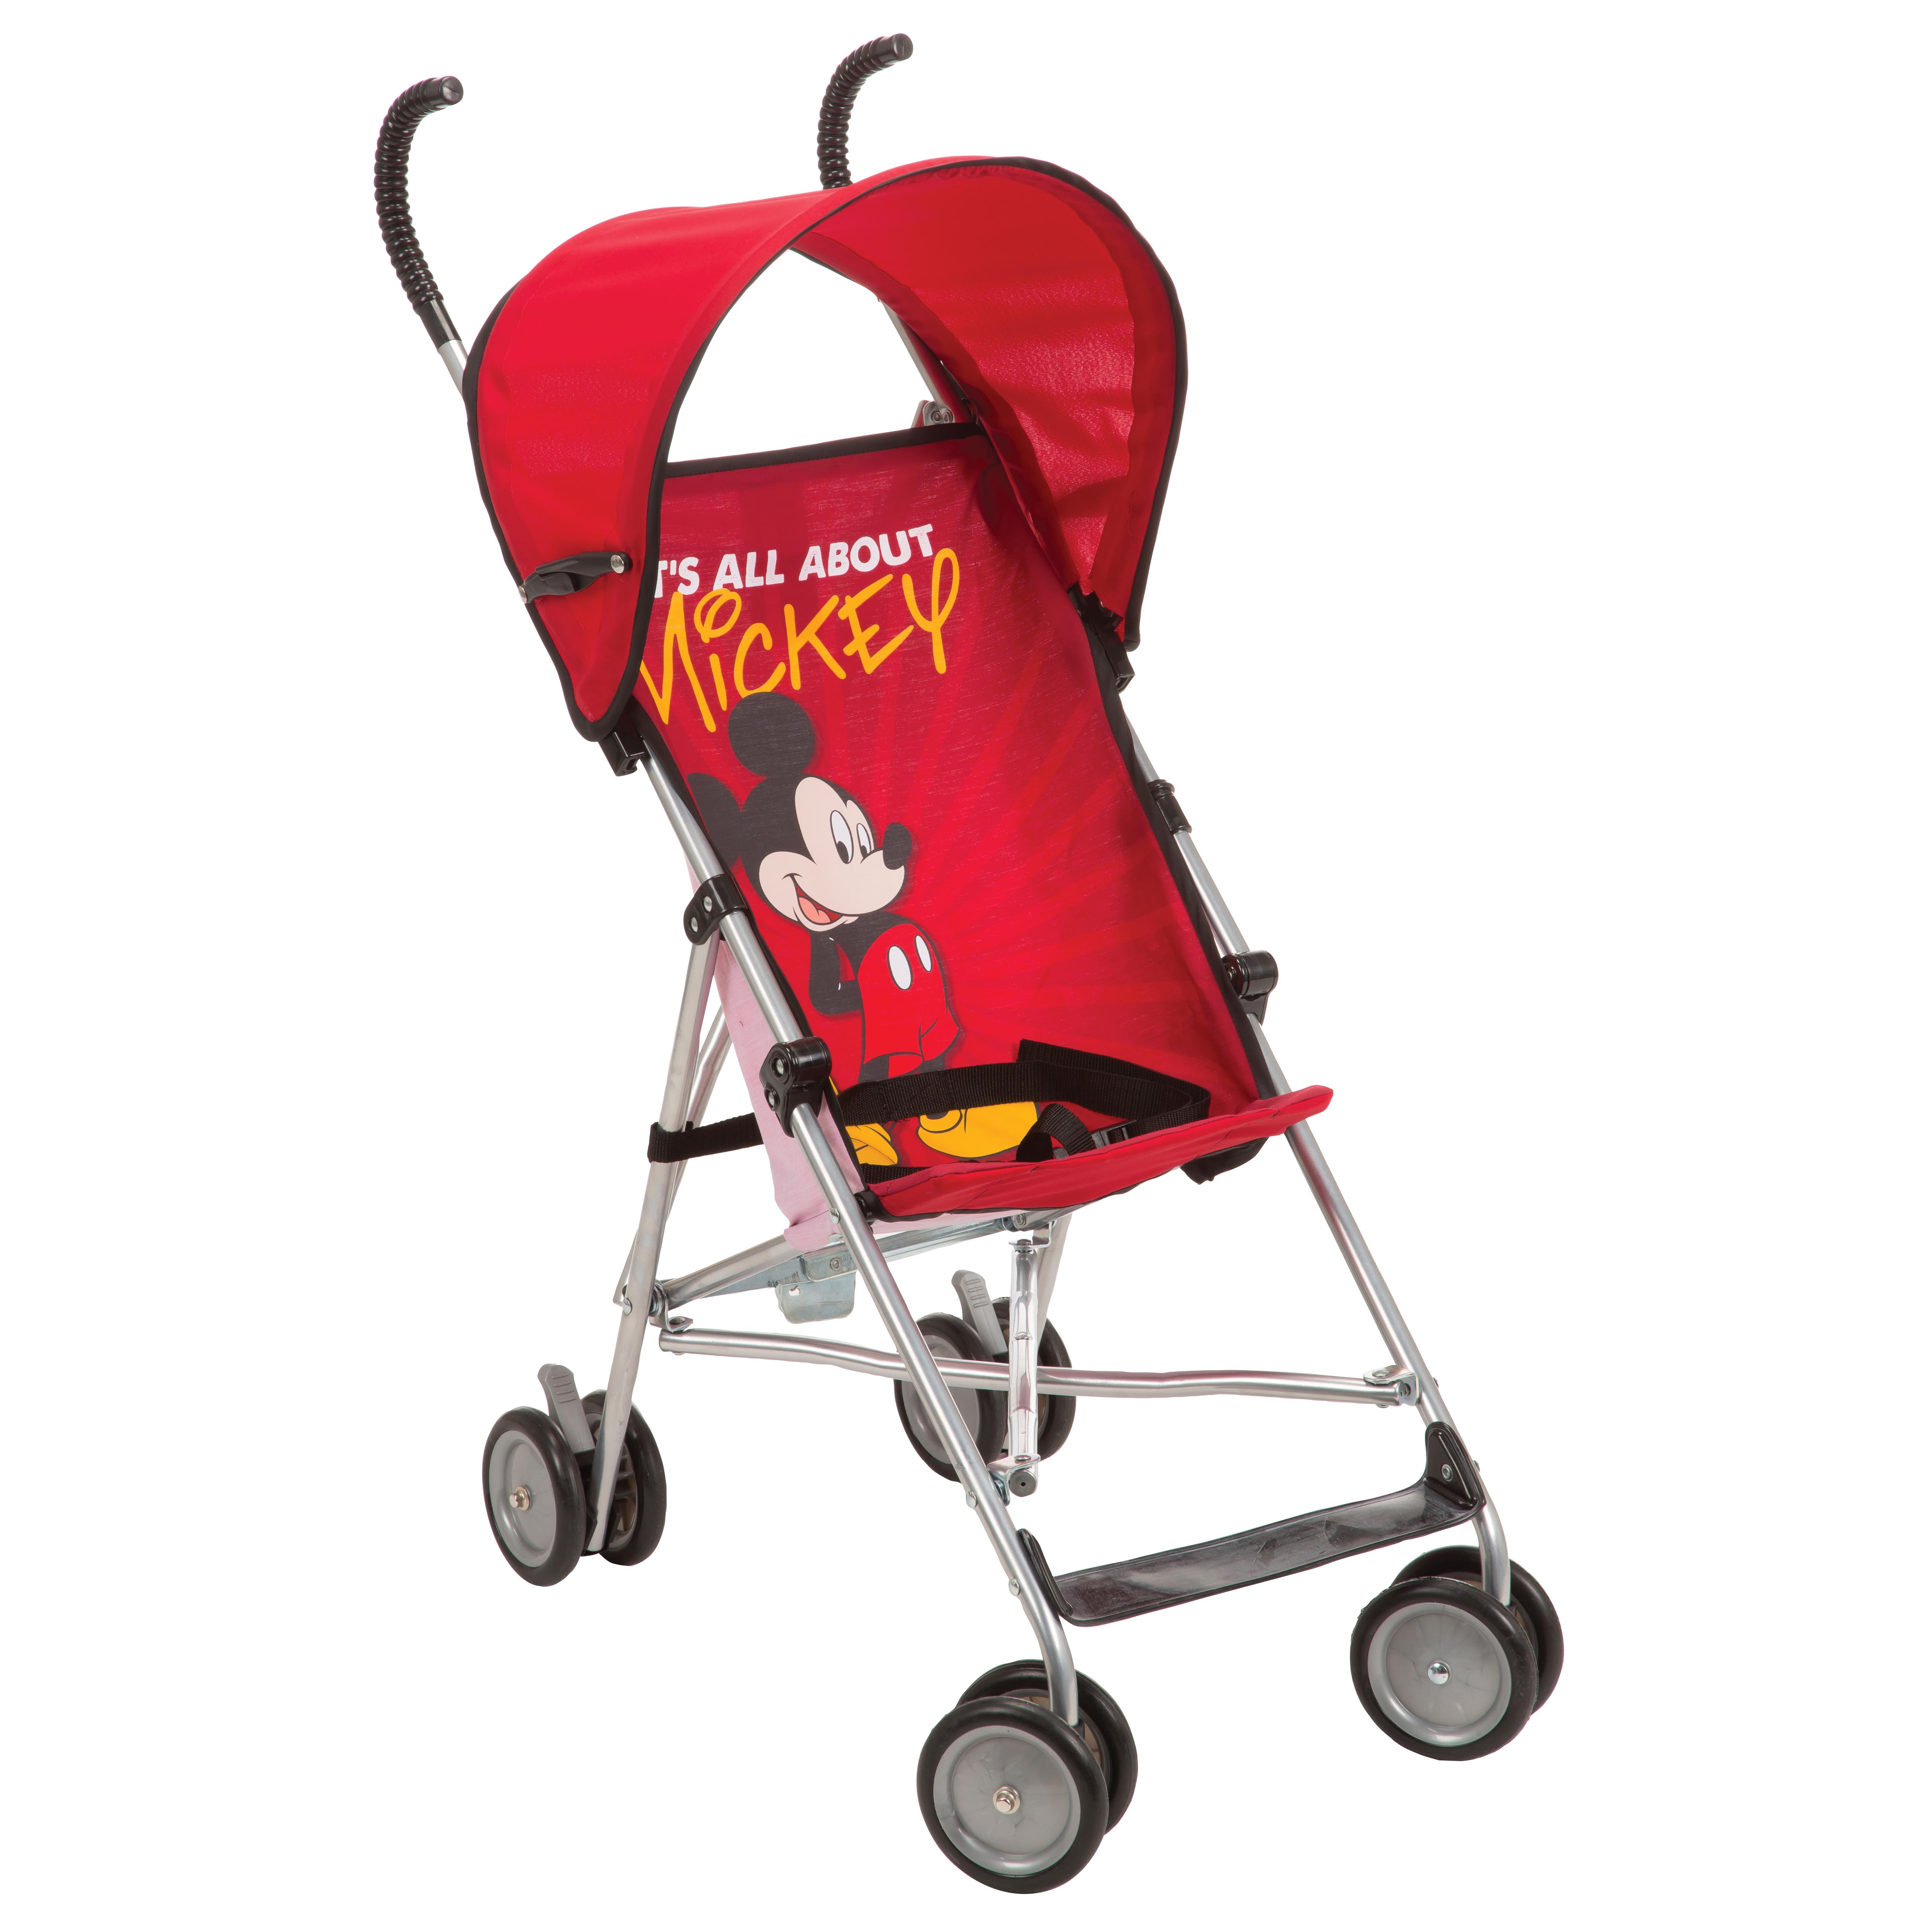 Disney Baby Umbrella Stroller with Canopy